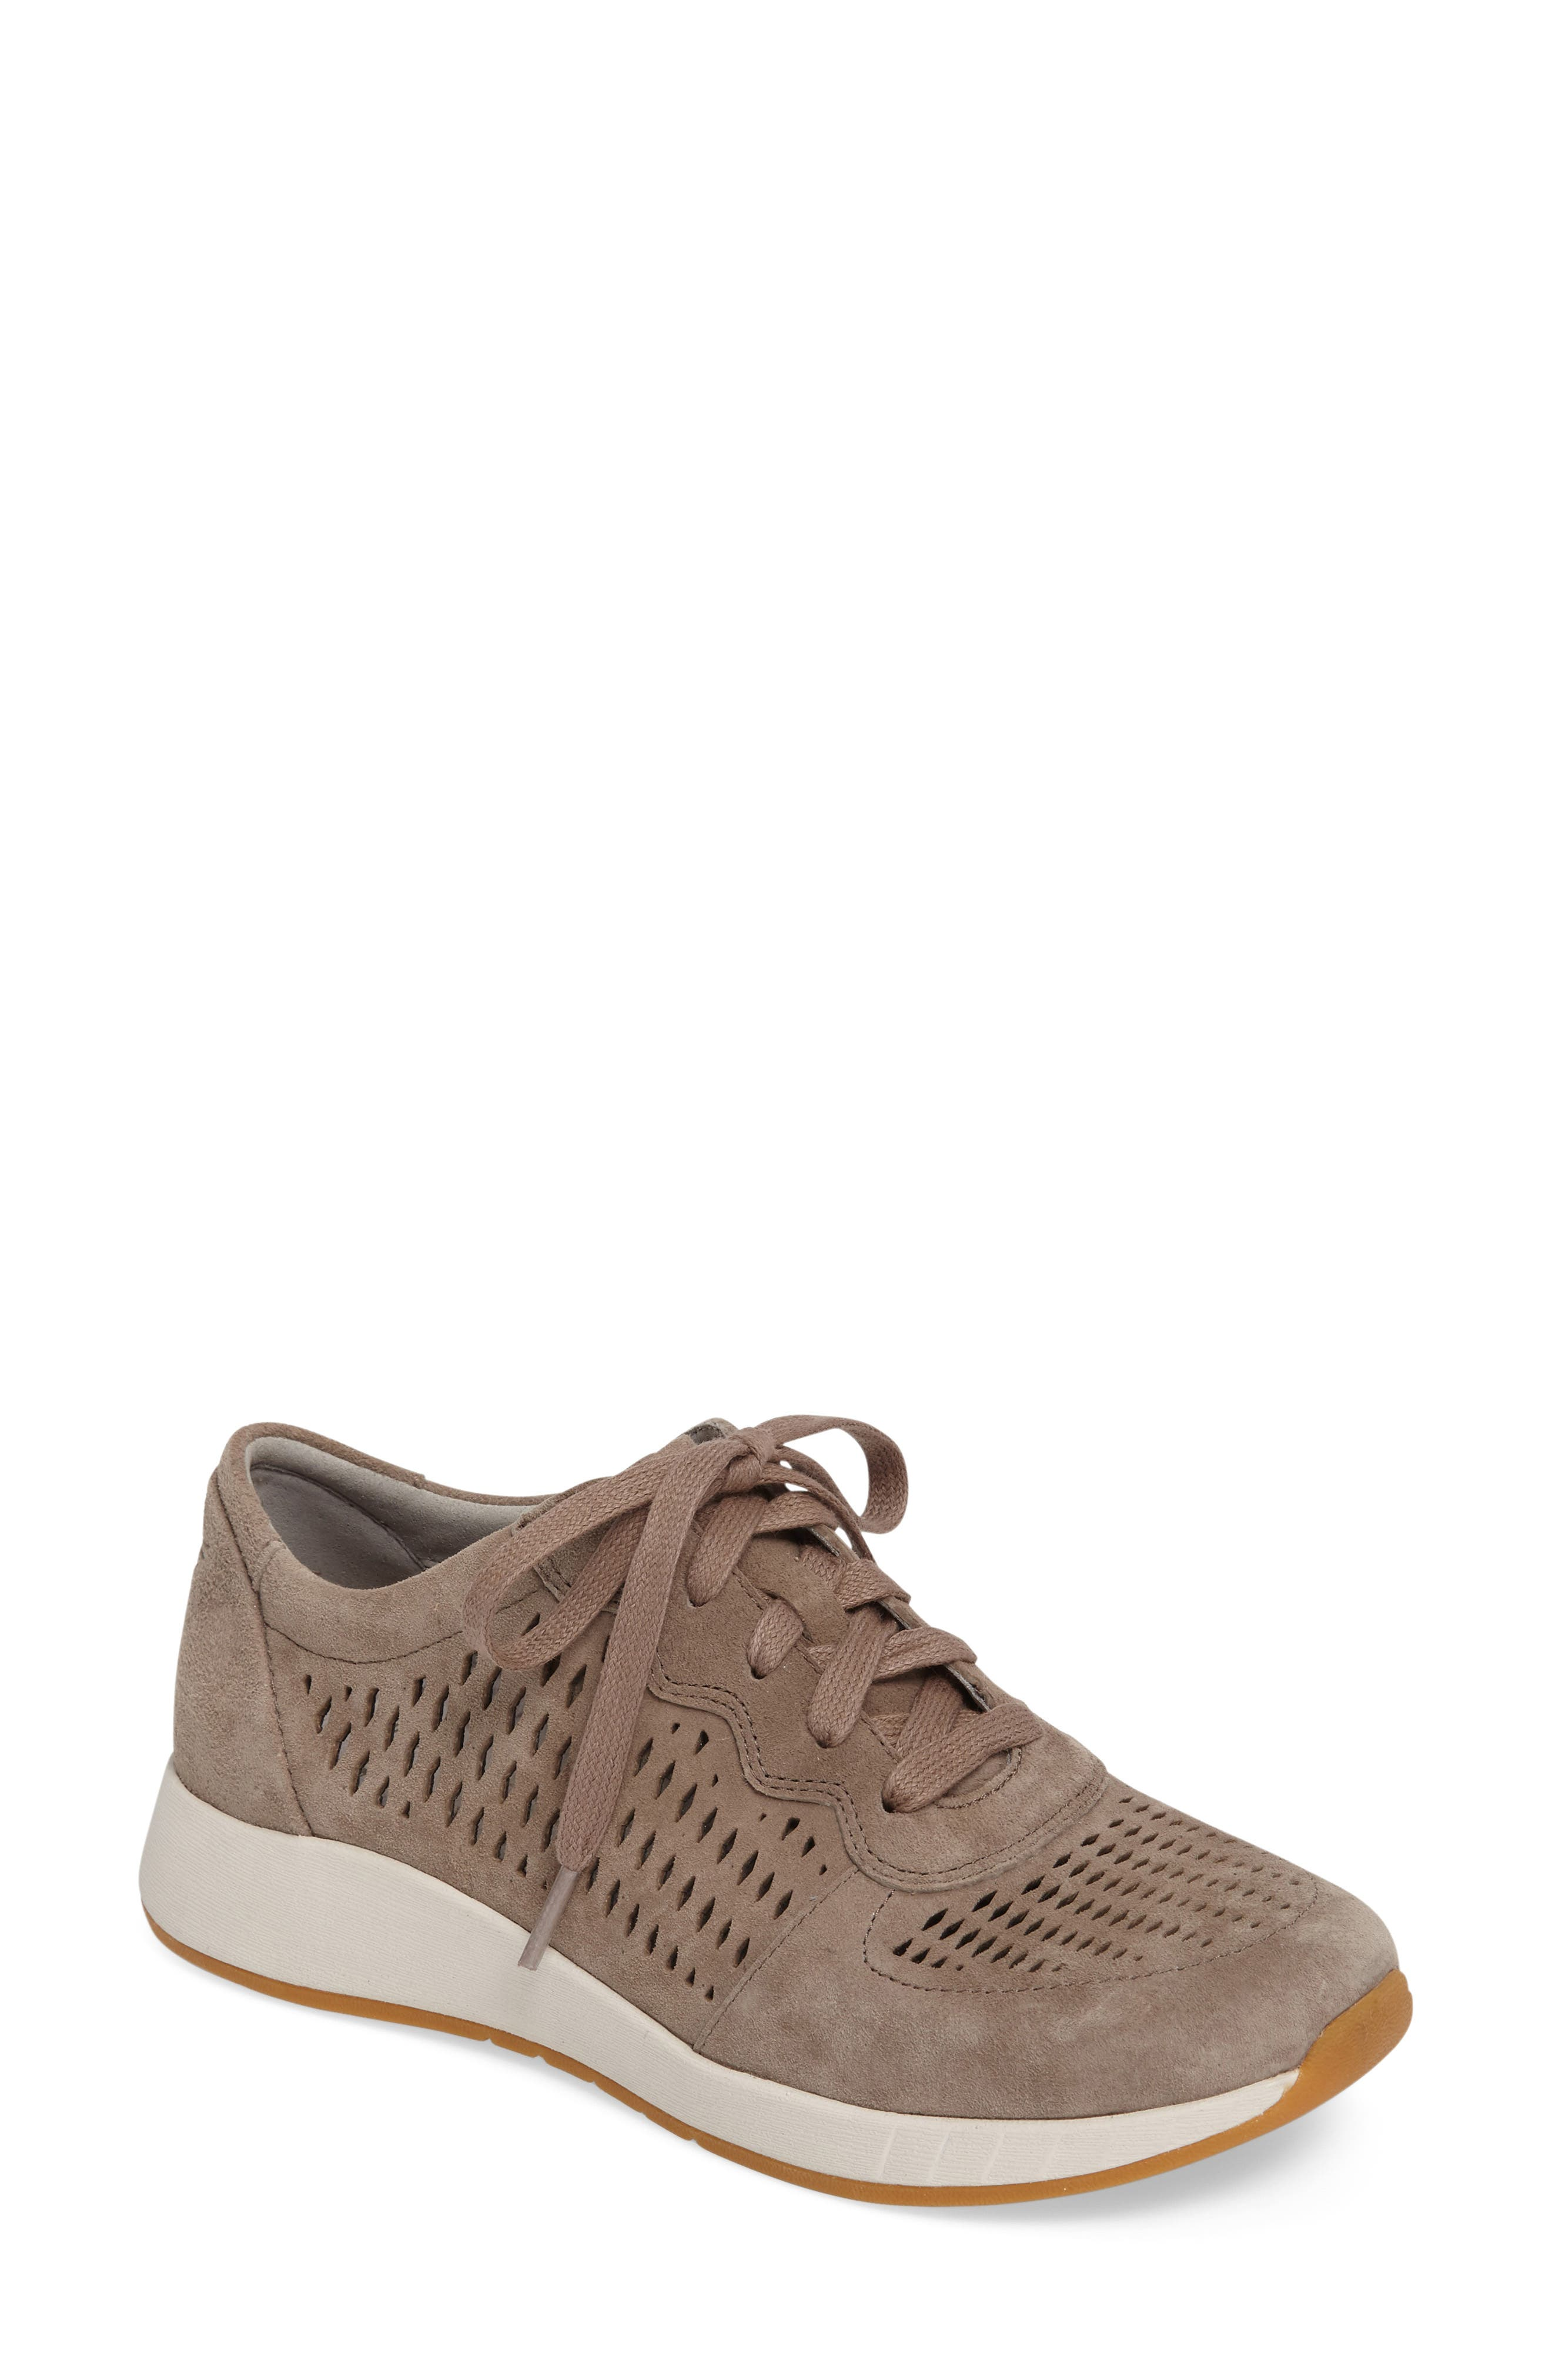 Charlie Perforated Sneaker,                             Main thumbnail 1, color,                             WALNUT SUEDE